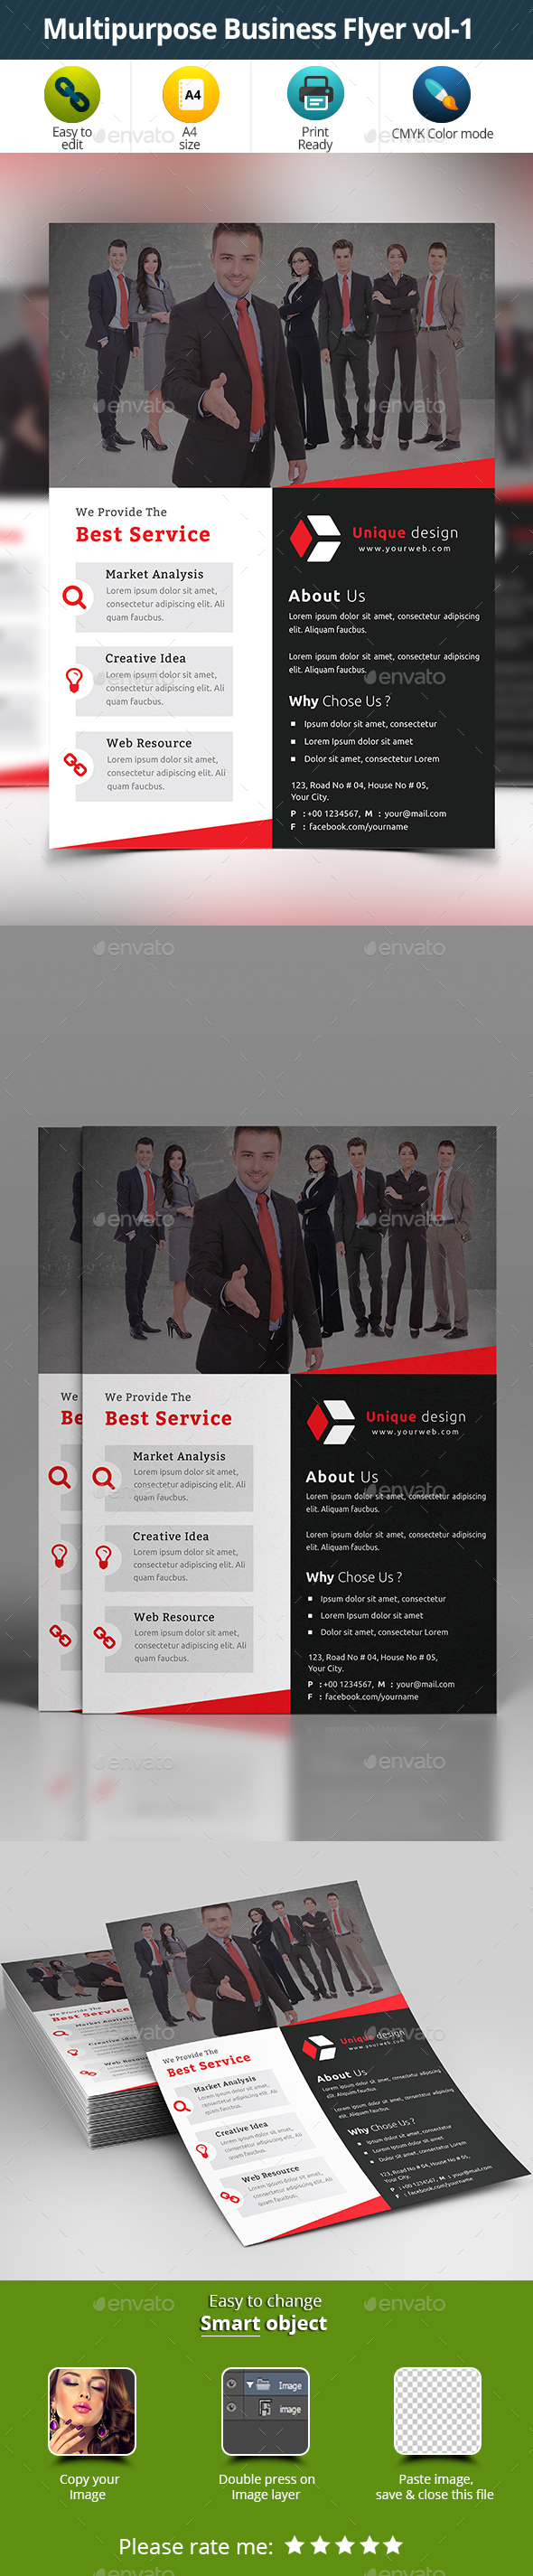 Multipurpose Business Flyer vol-1 - Corporate Flyers